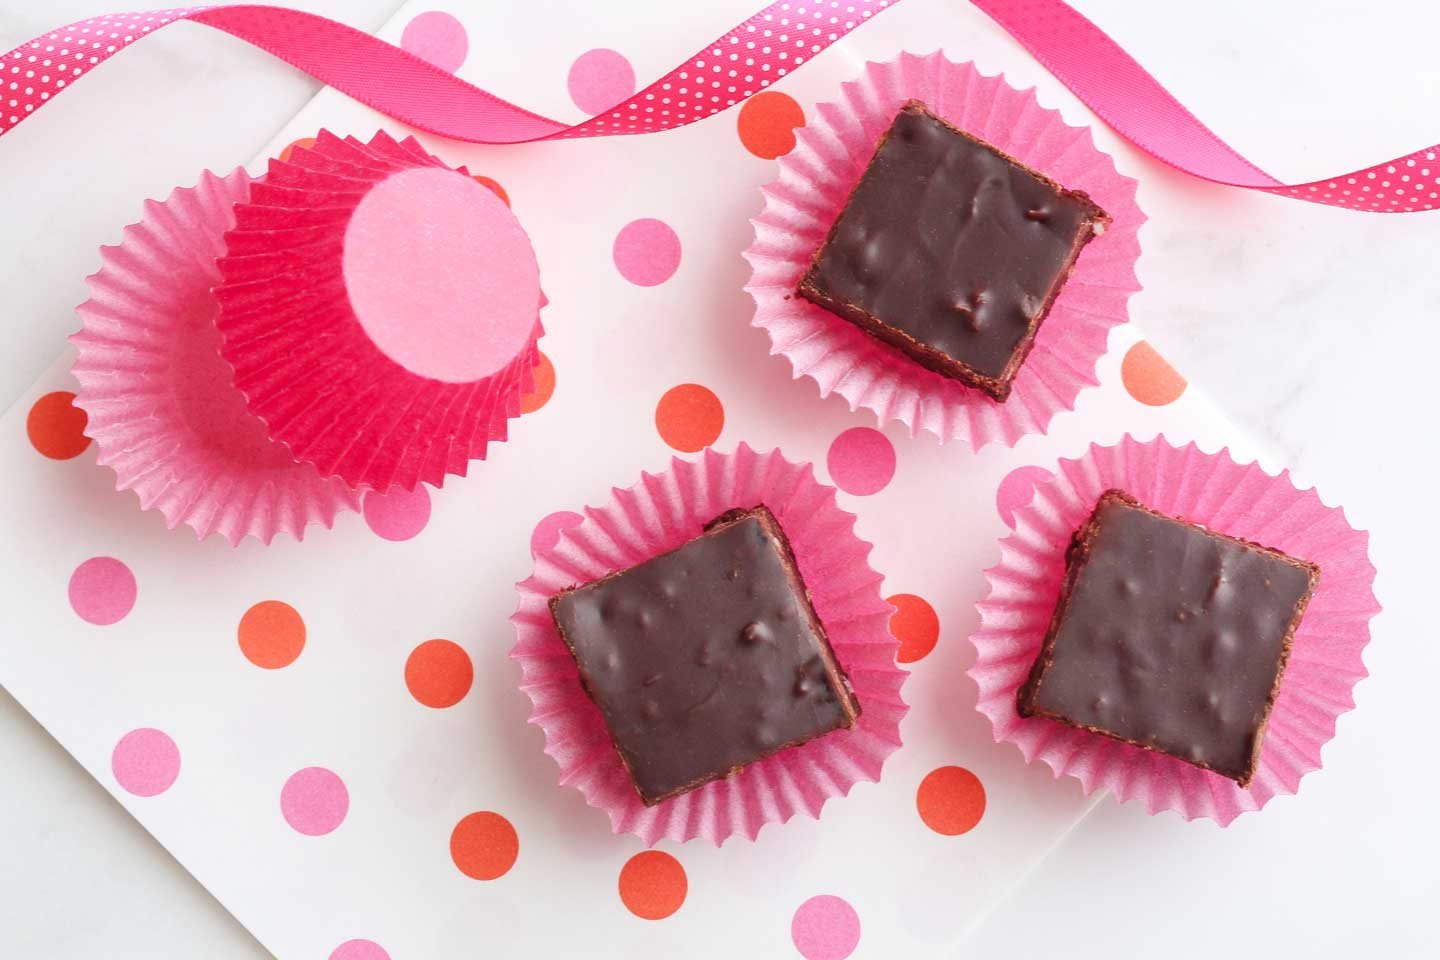 Overhead of three little squares of this fudge recipe, each on a little pink cupcake paper, sitting on a polka-dot background with pink ribbon curling at the top.